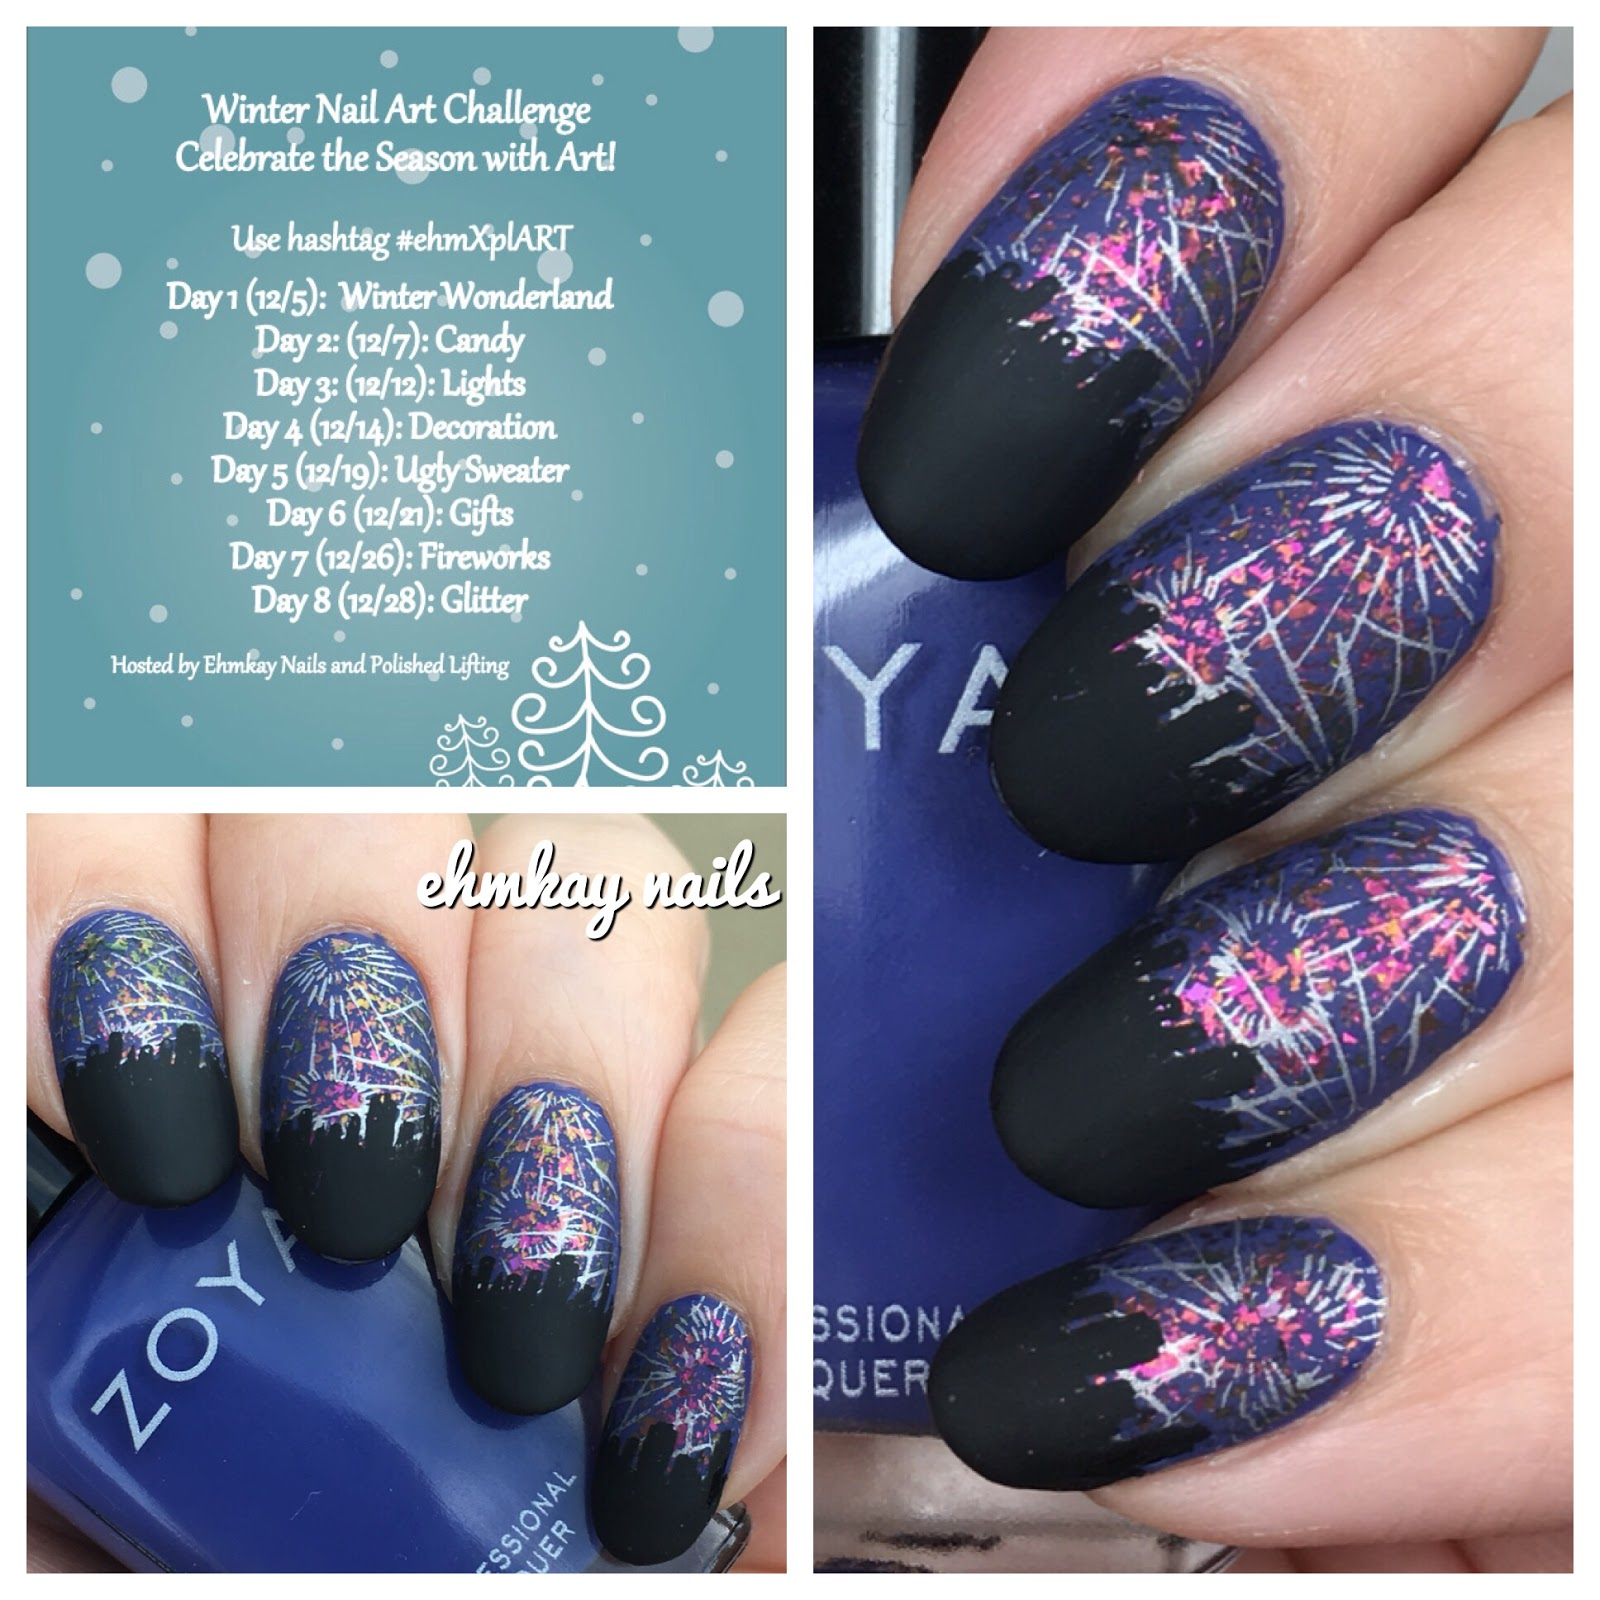 ehmkay nails: Winter Nail Art Challenge: Fireworks over the City ...